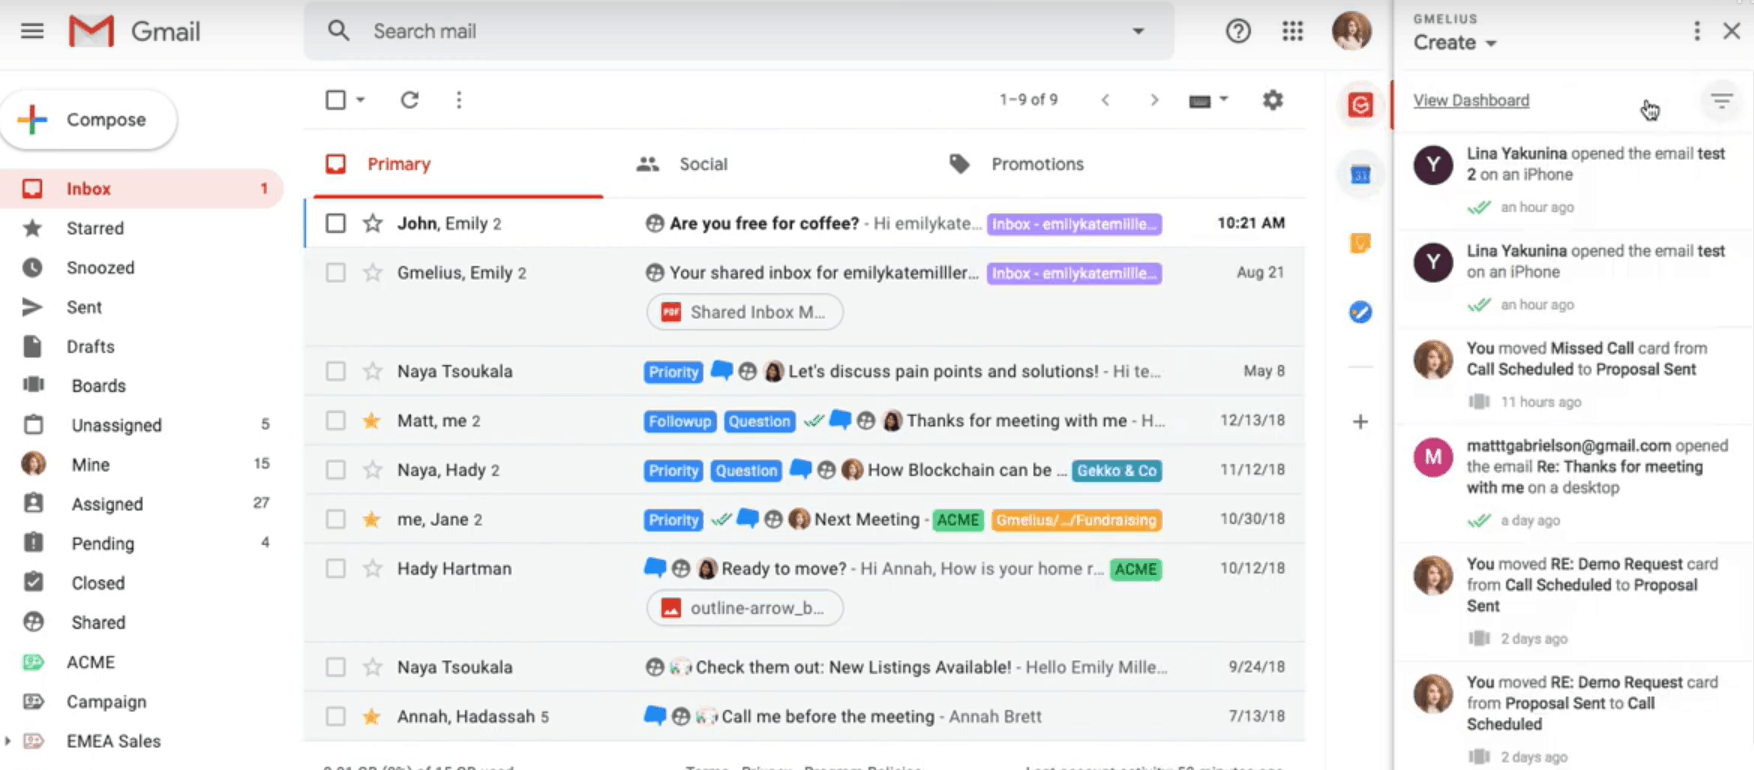 Gmelius's email interface